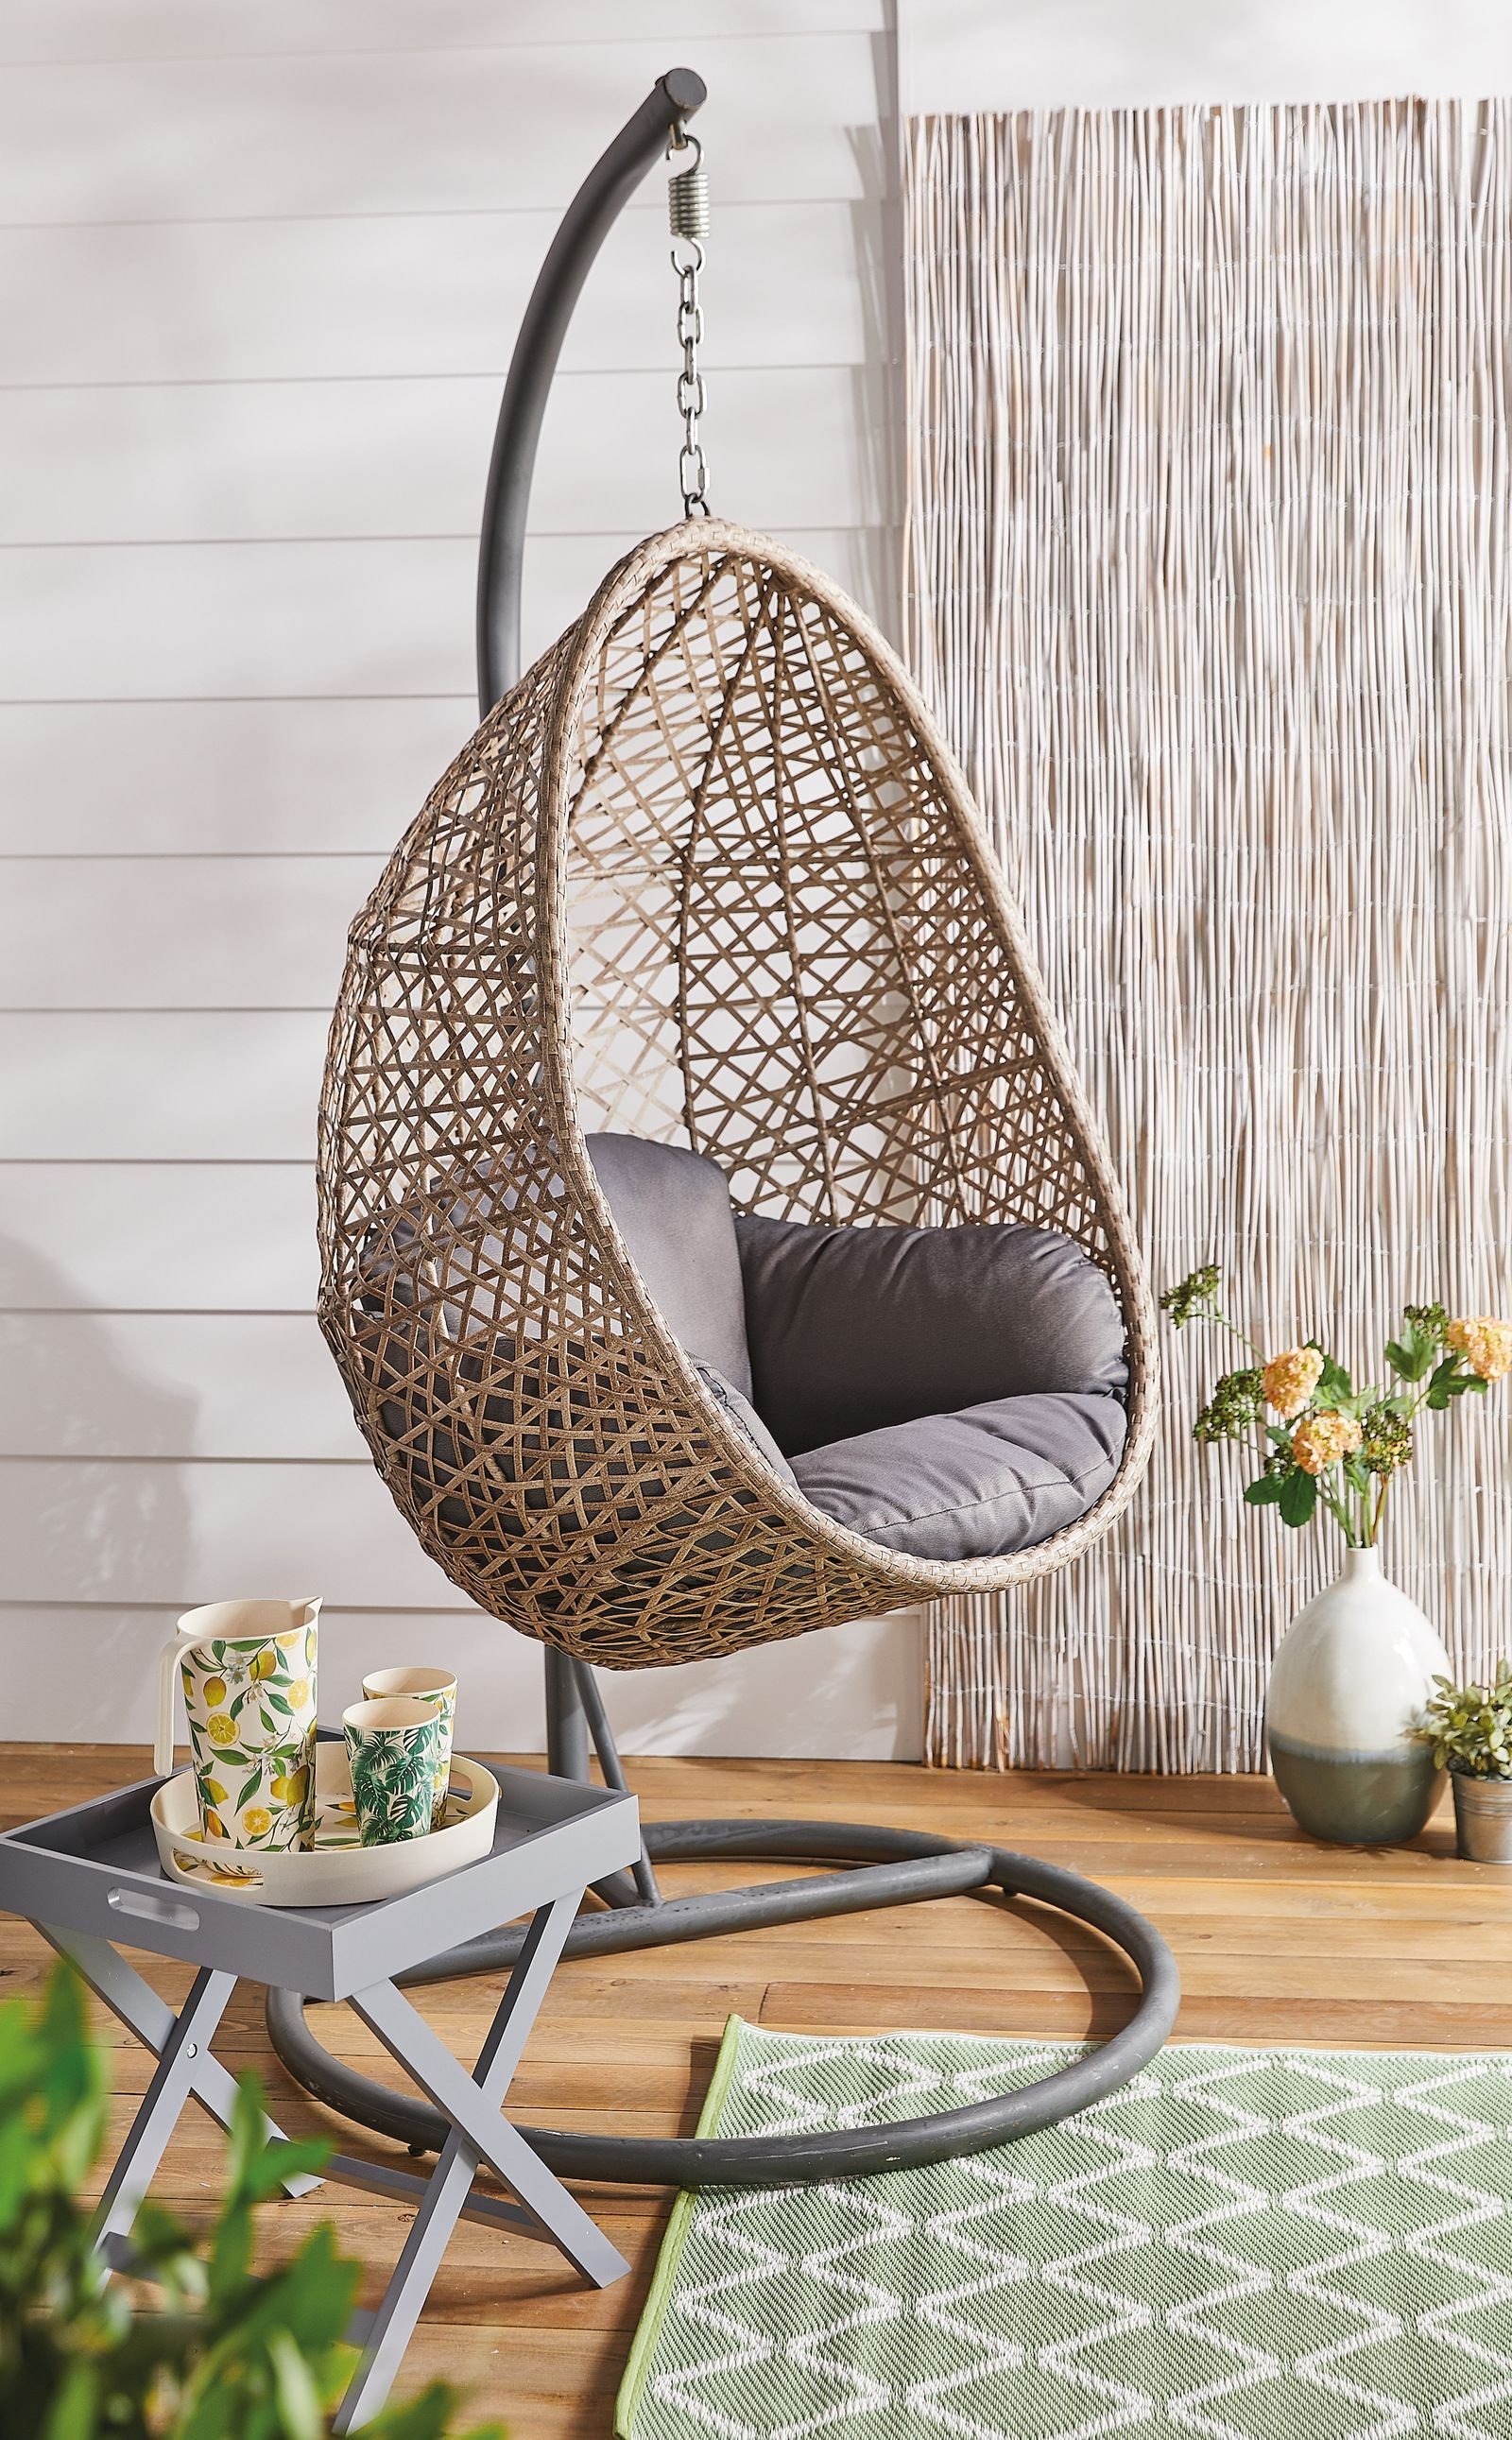 The New Aldi Garden Furniture Range Is Here And There S A Wooden Bench With A Built In Table For 70 Hanging Egg Chair Hanging Garden Chair Home Decor